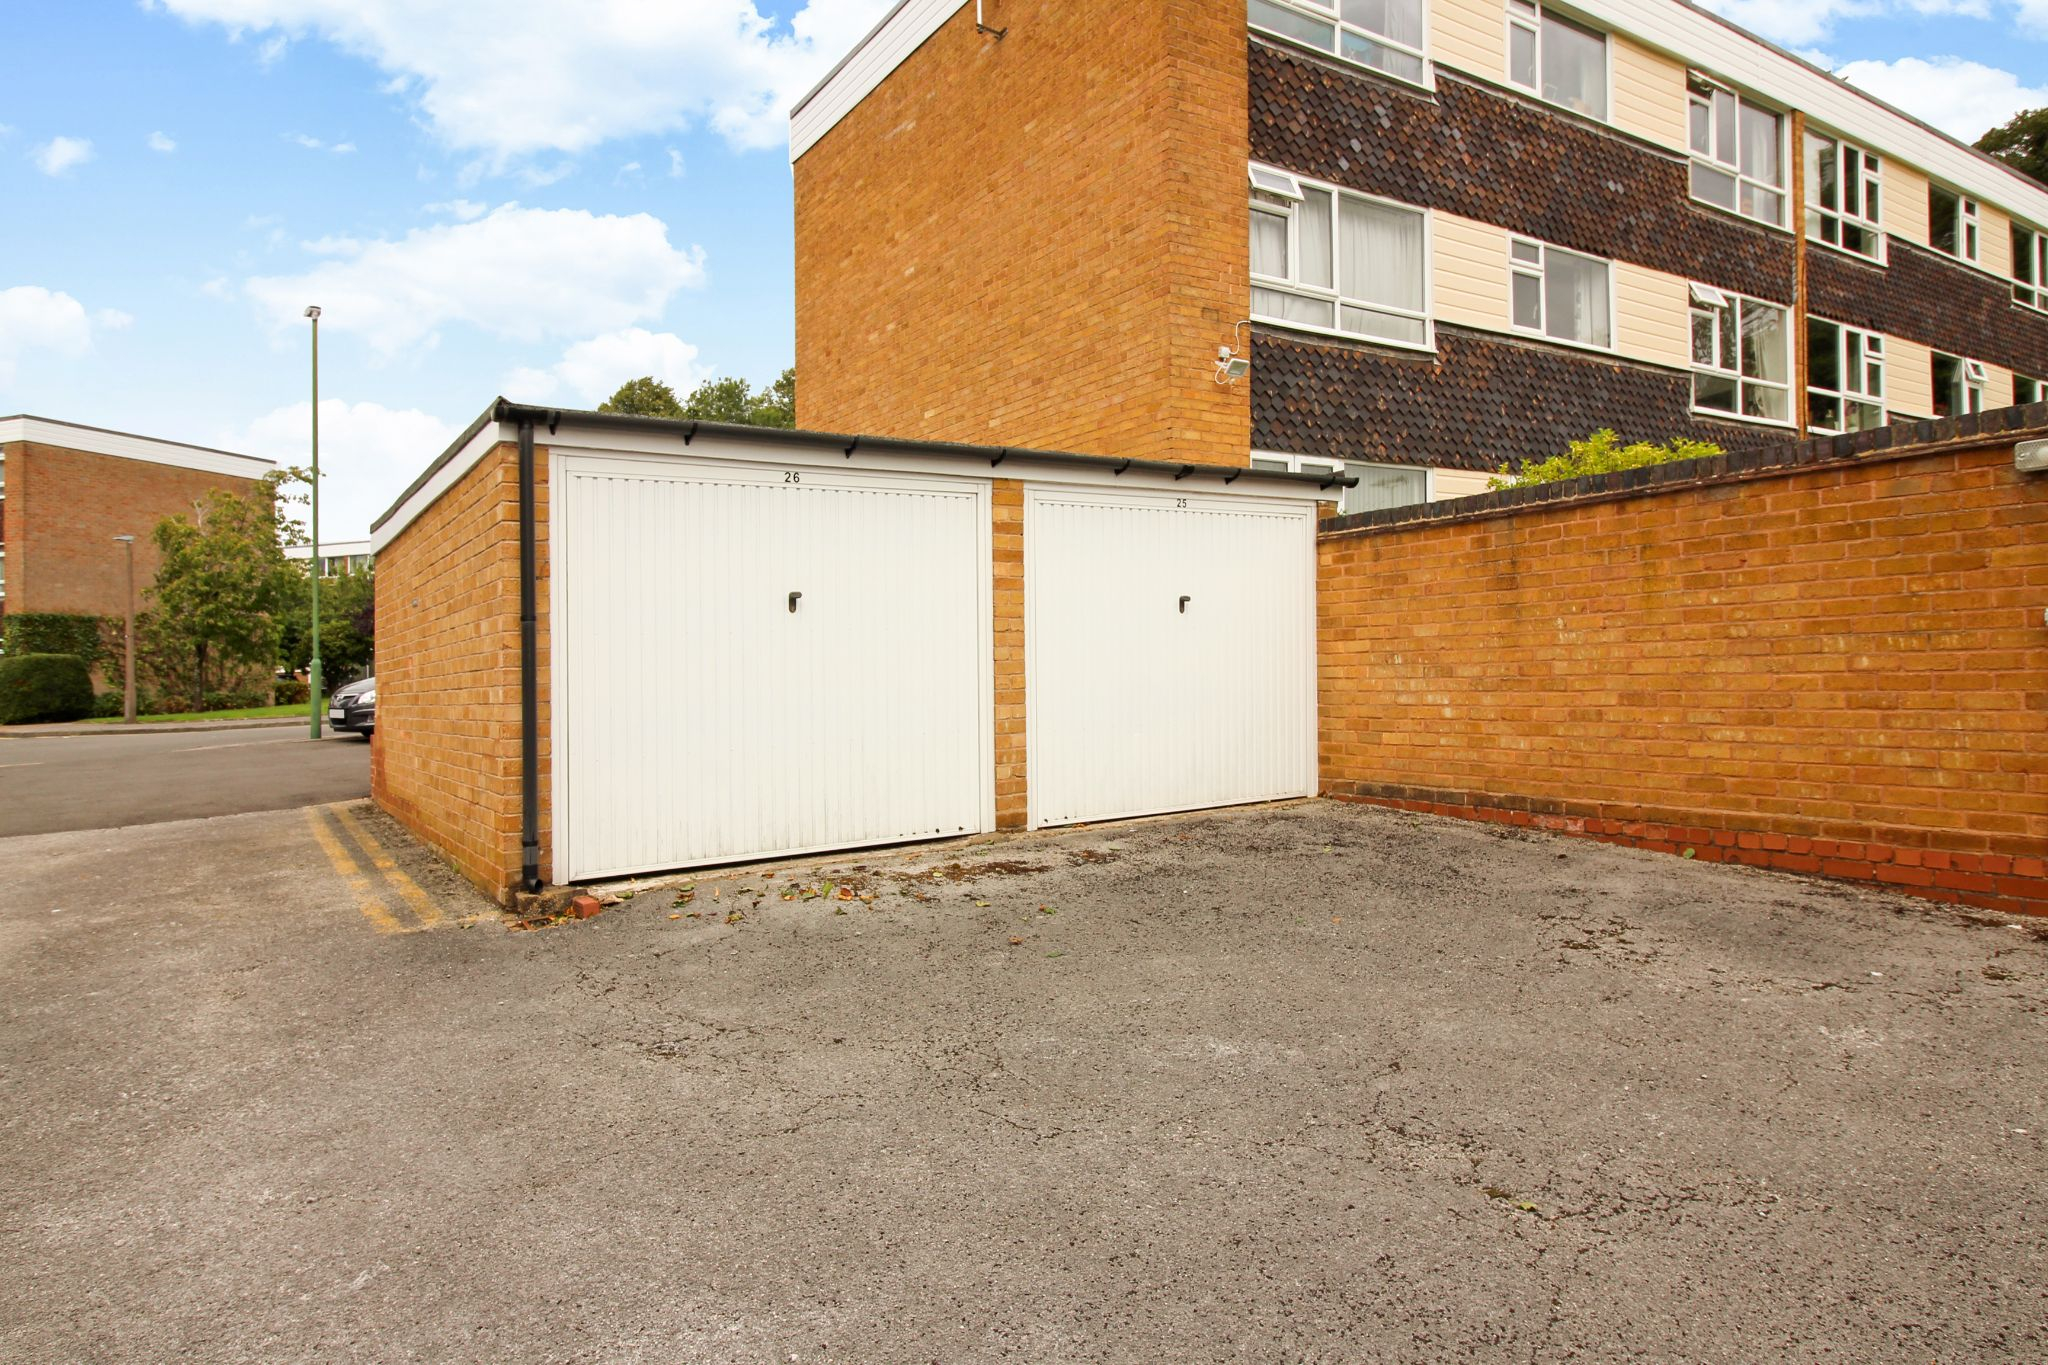 2 bedroom ground floor flat/apartment For Sale in Solihull - Photograph 14.